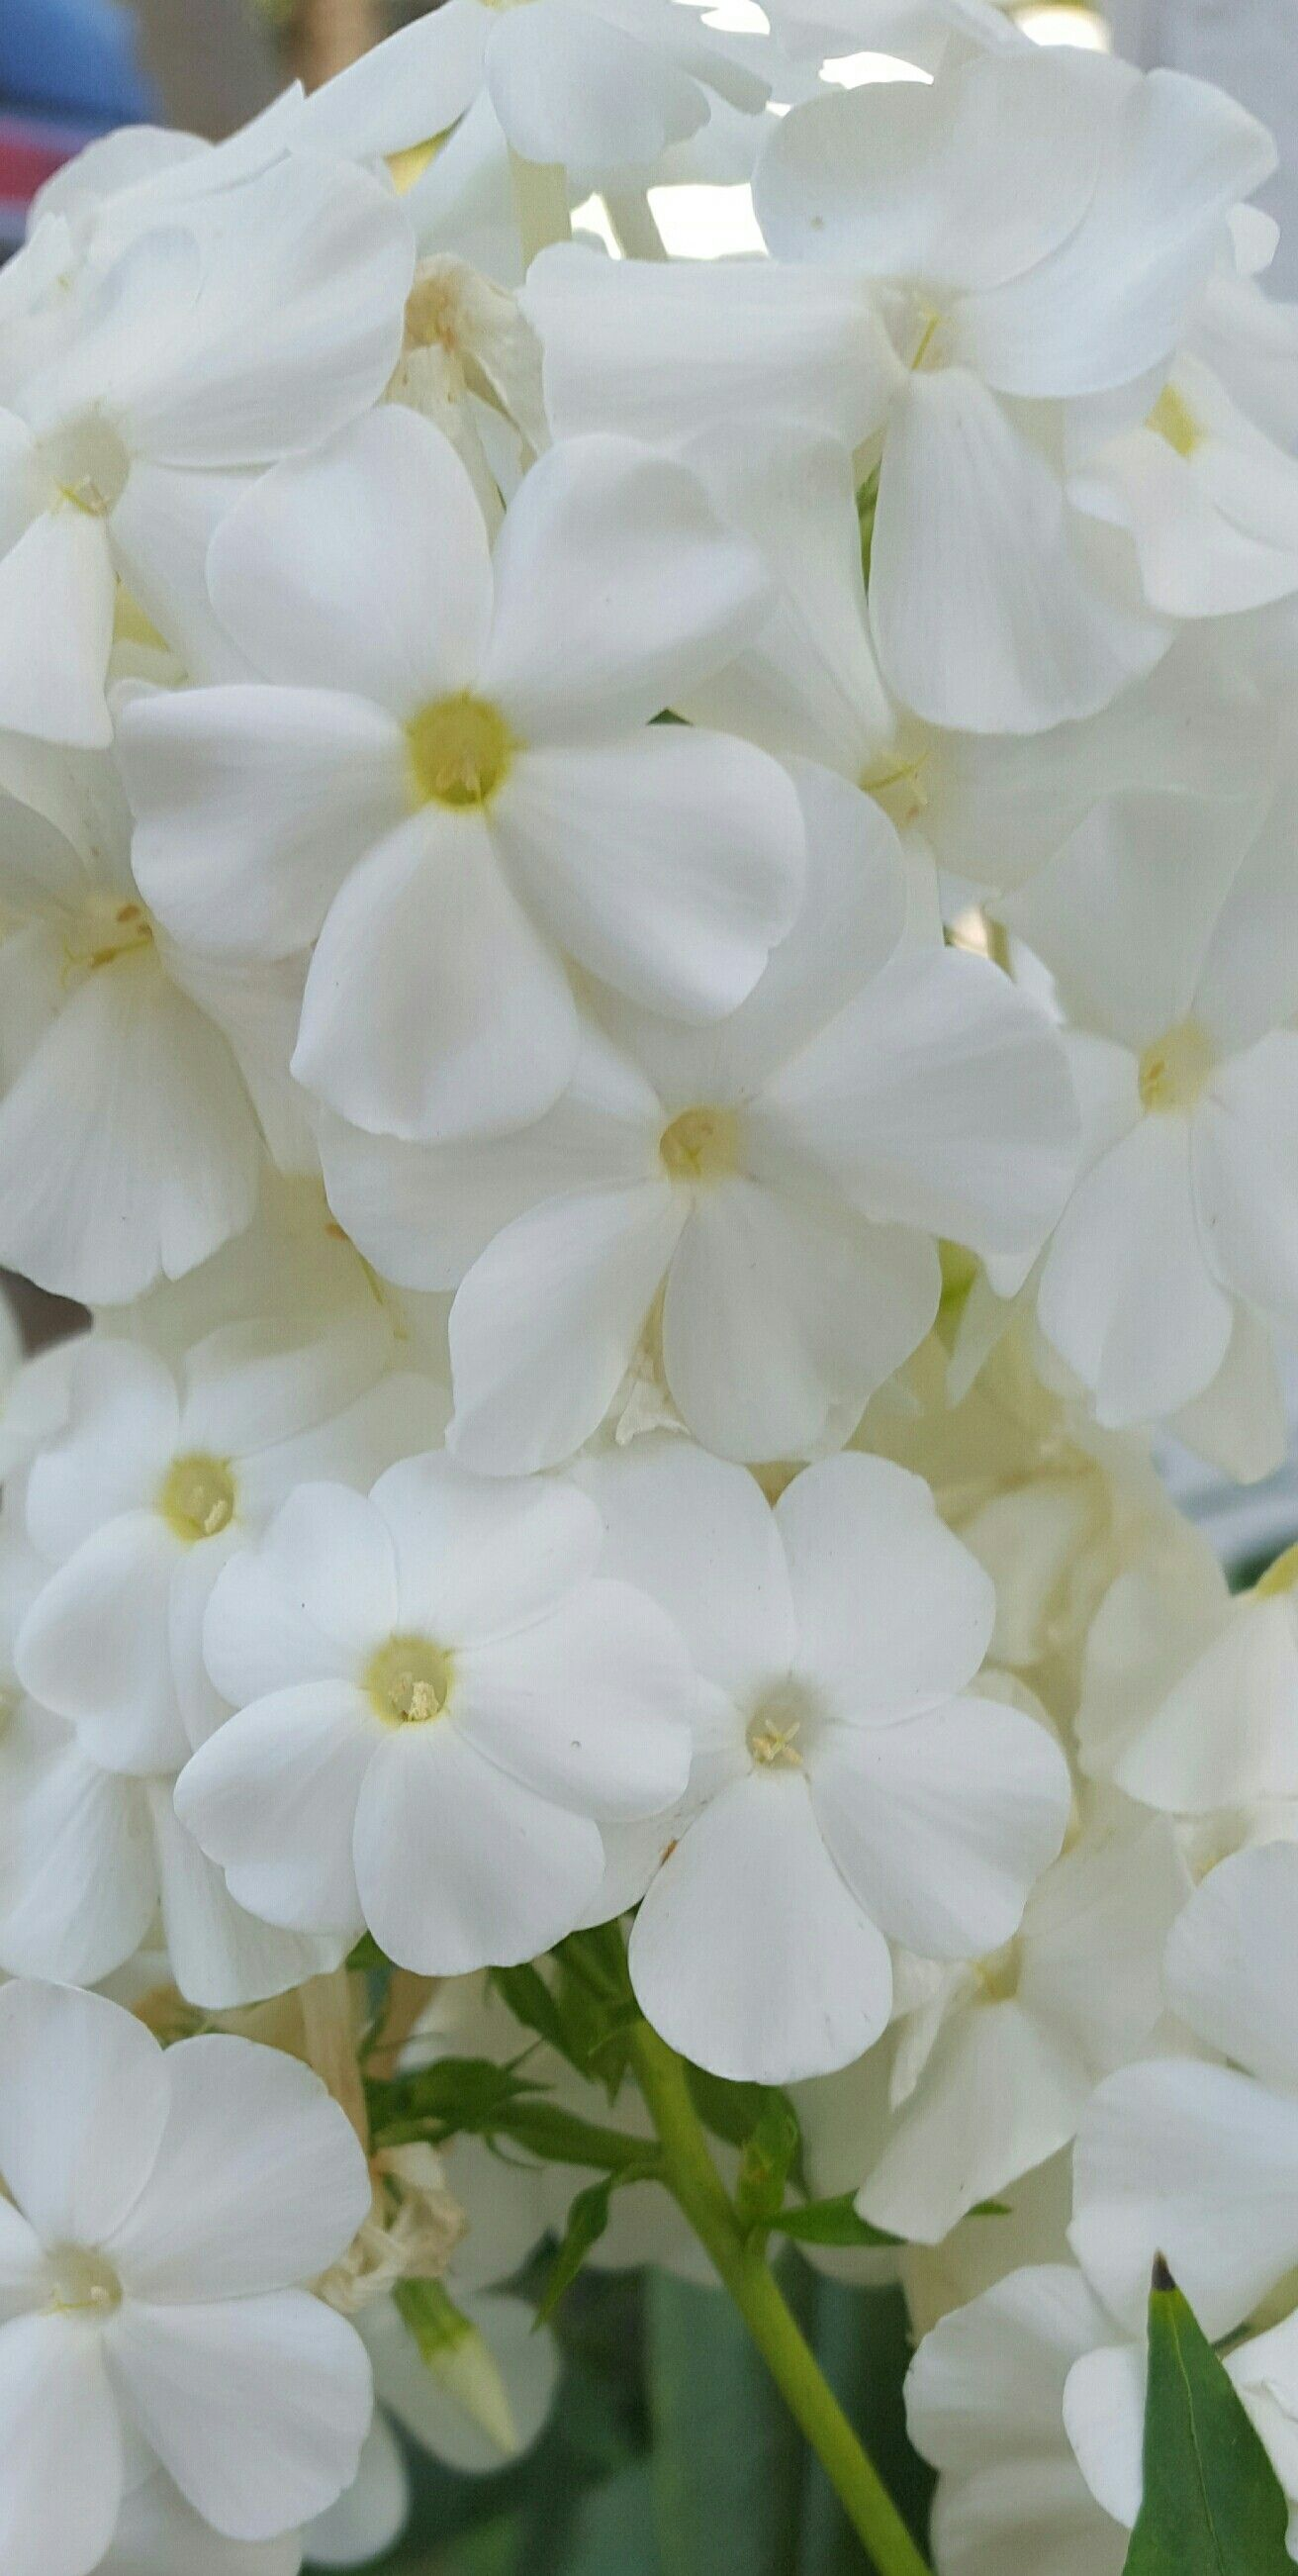 List of white flowers new house designs flower types name list plants pin by linda ramirez mendez on beautiful blooms pinterest white mightylinksfo